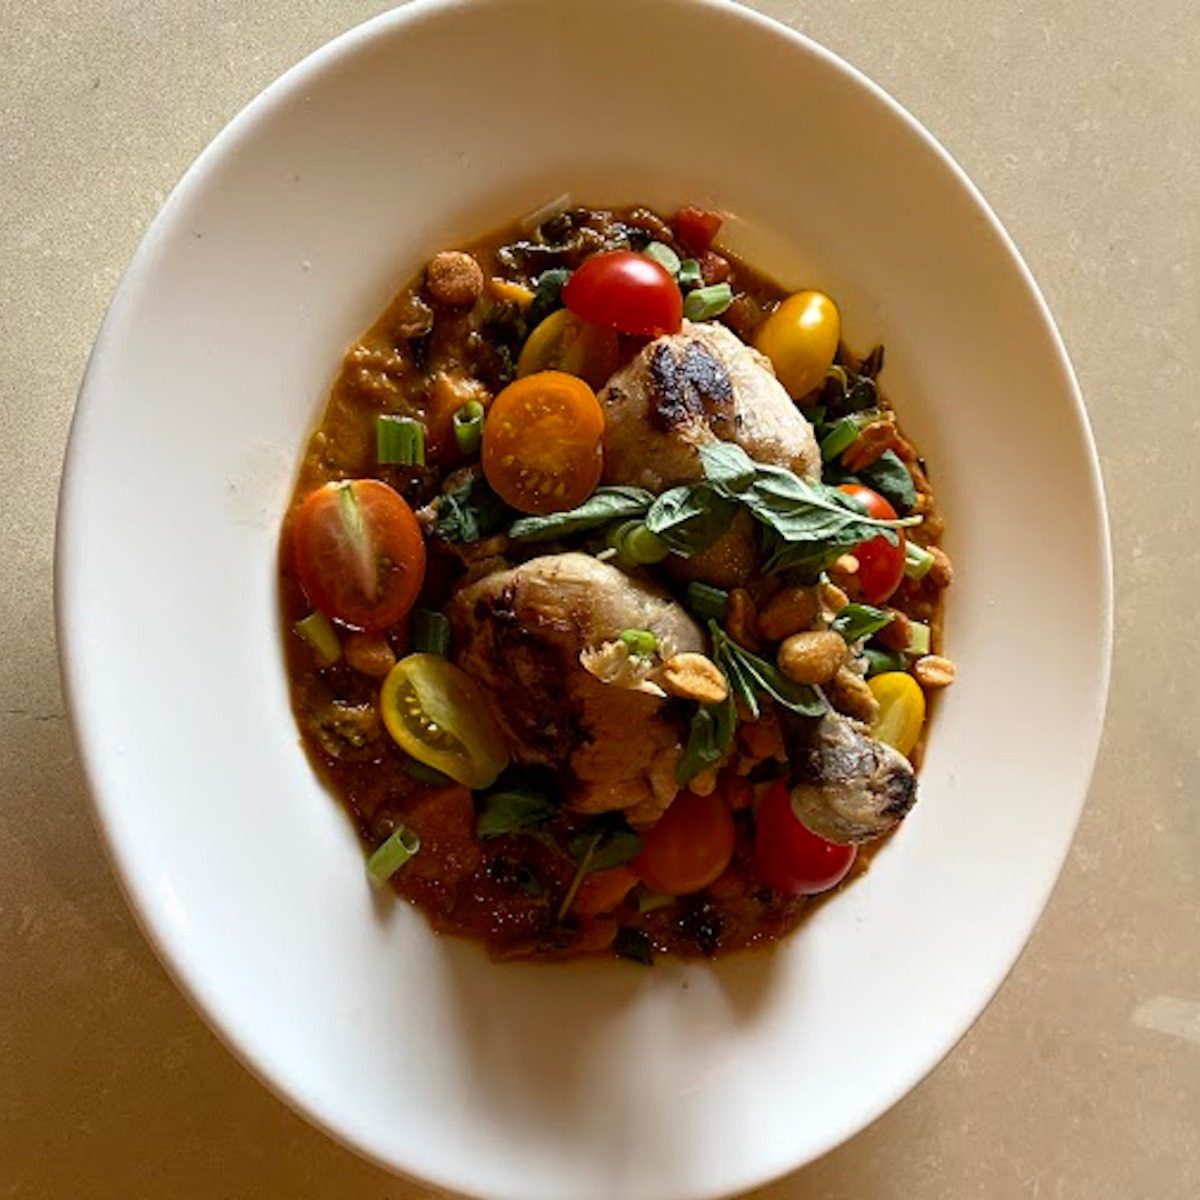 West African-Inspired Peanut Stew with Confit Chicken